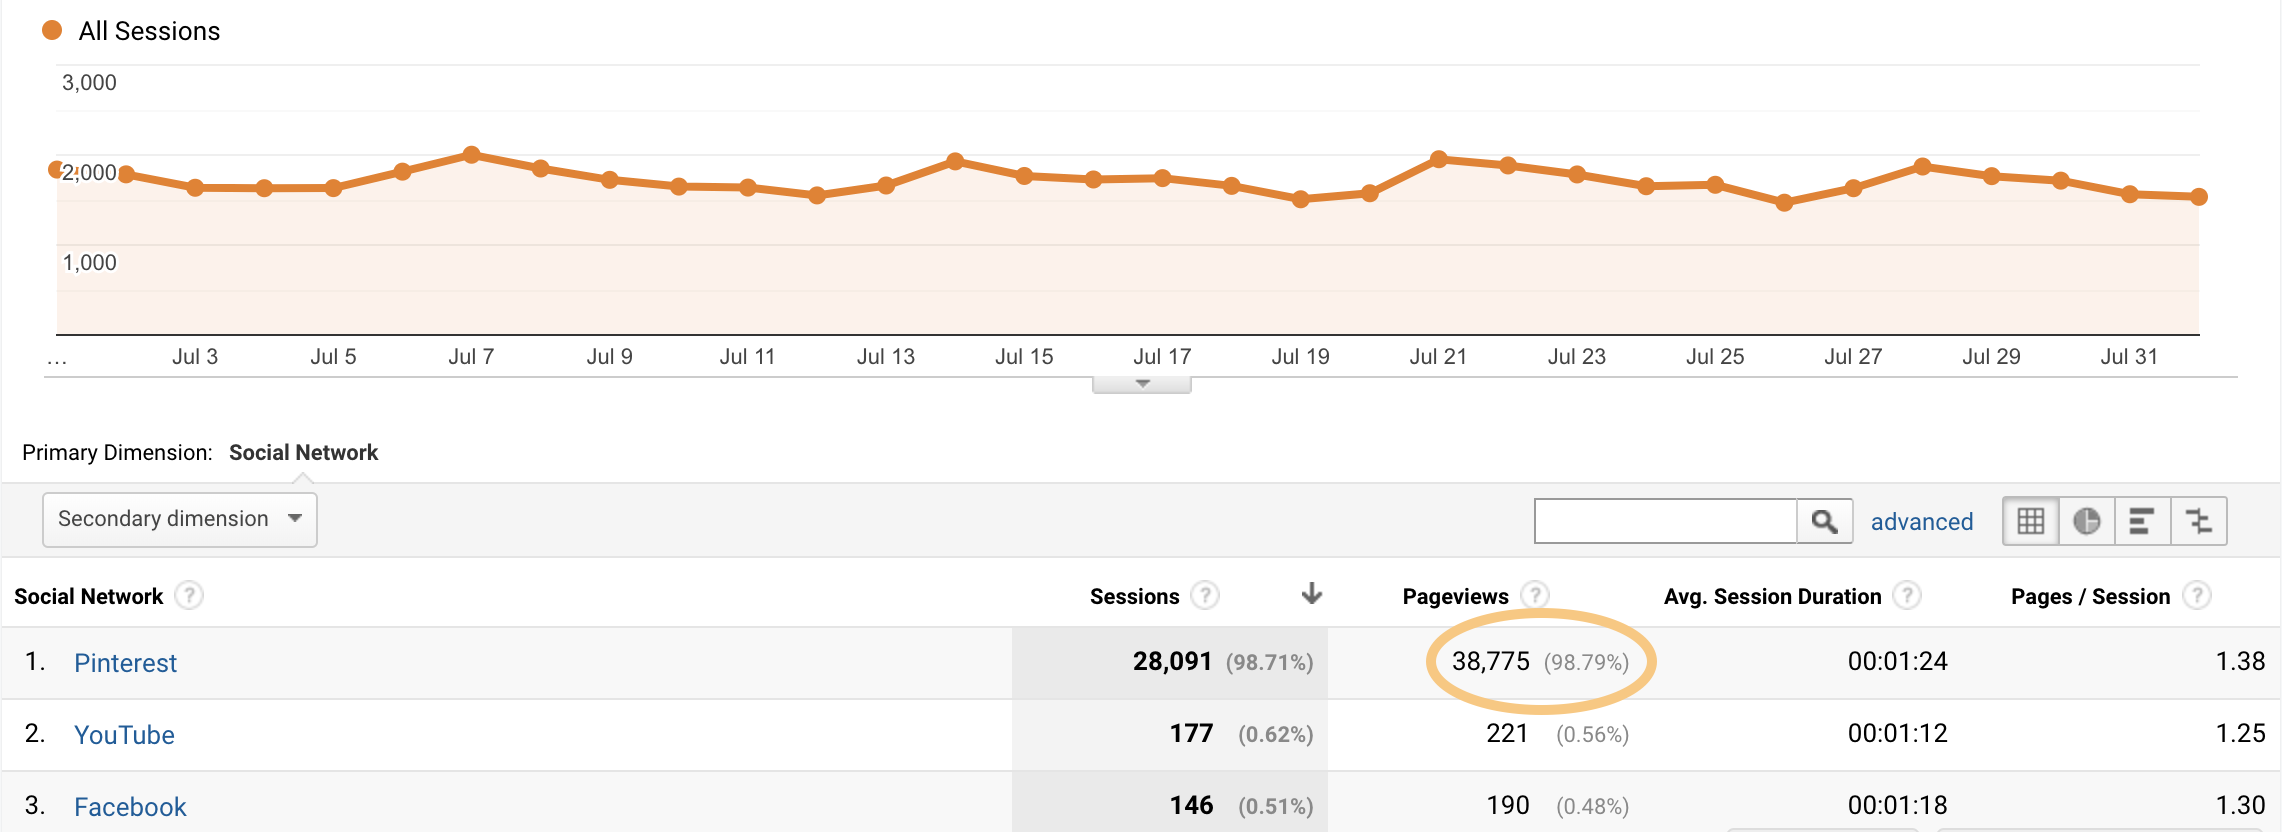 Monthly Pinterest traffic